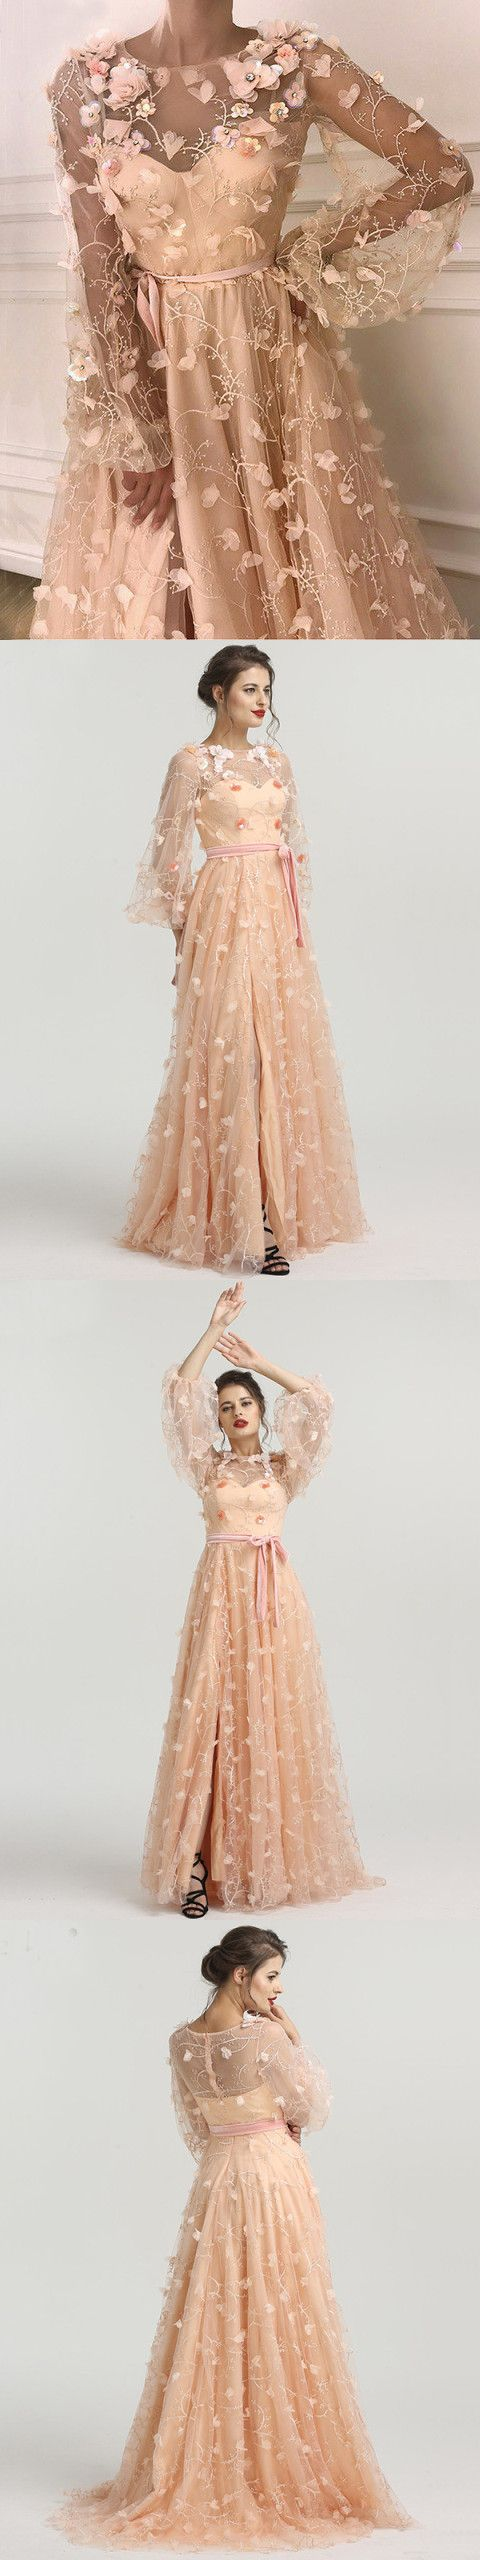 Chic aline scoop long sleeve prom dress with floral prom dresses